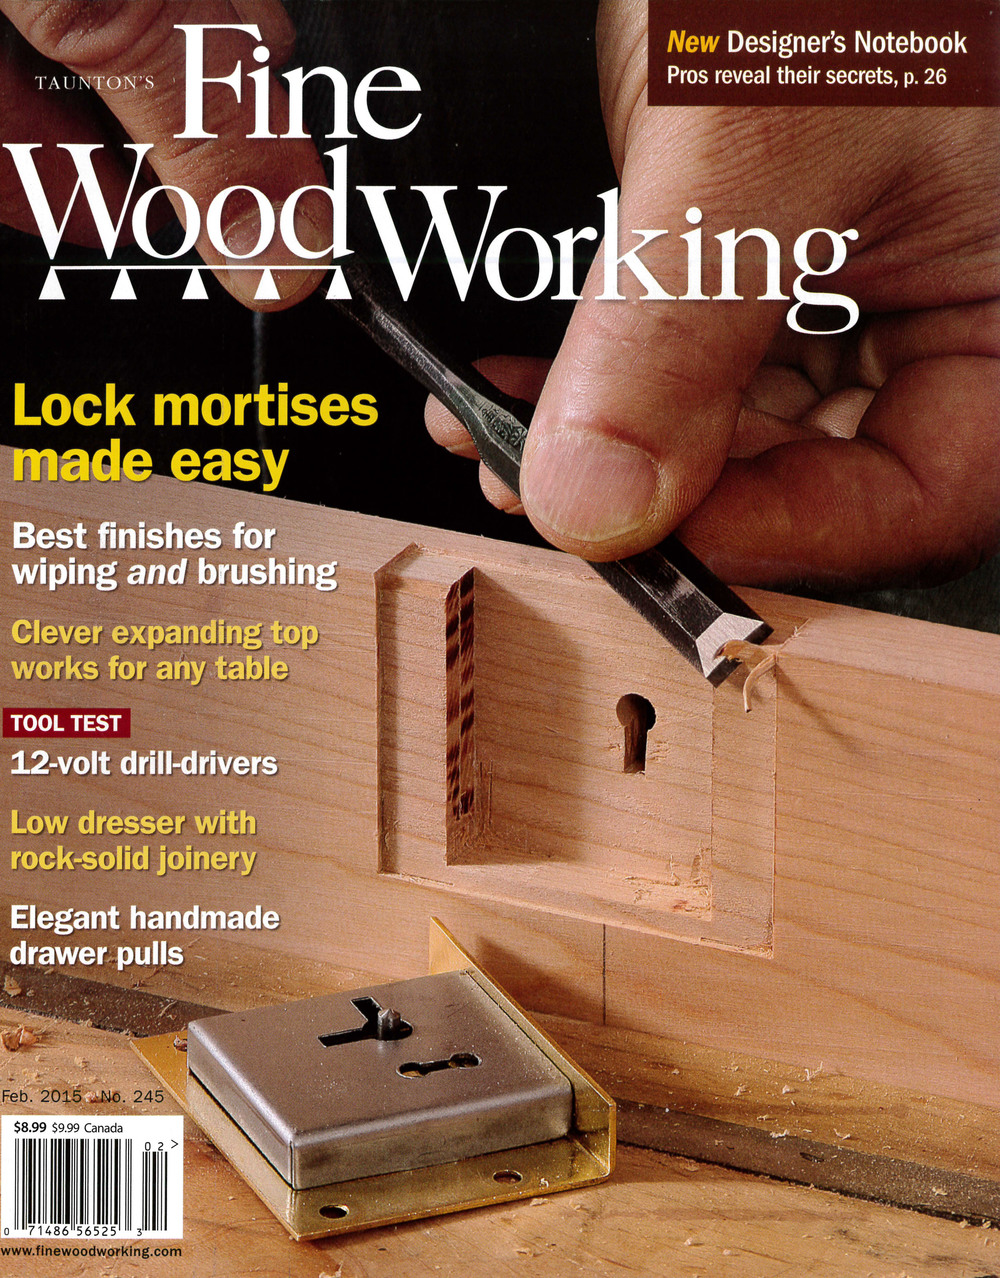 February 2015 Issue Of Fine Woodworking